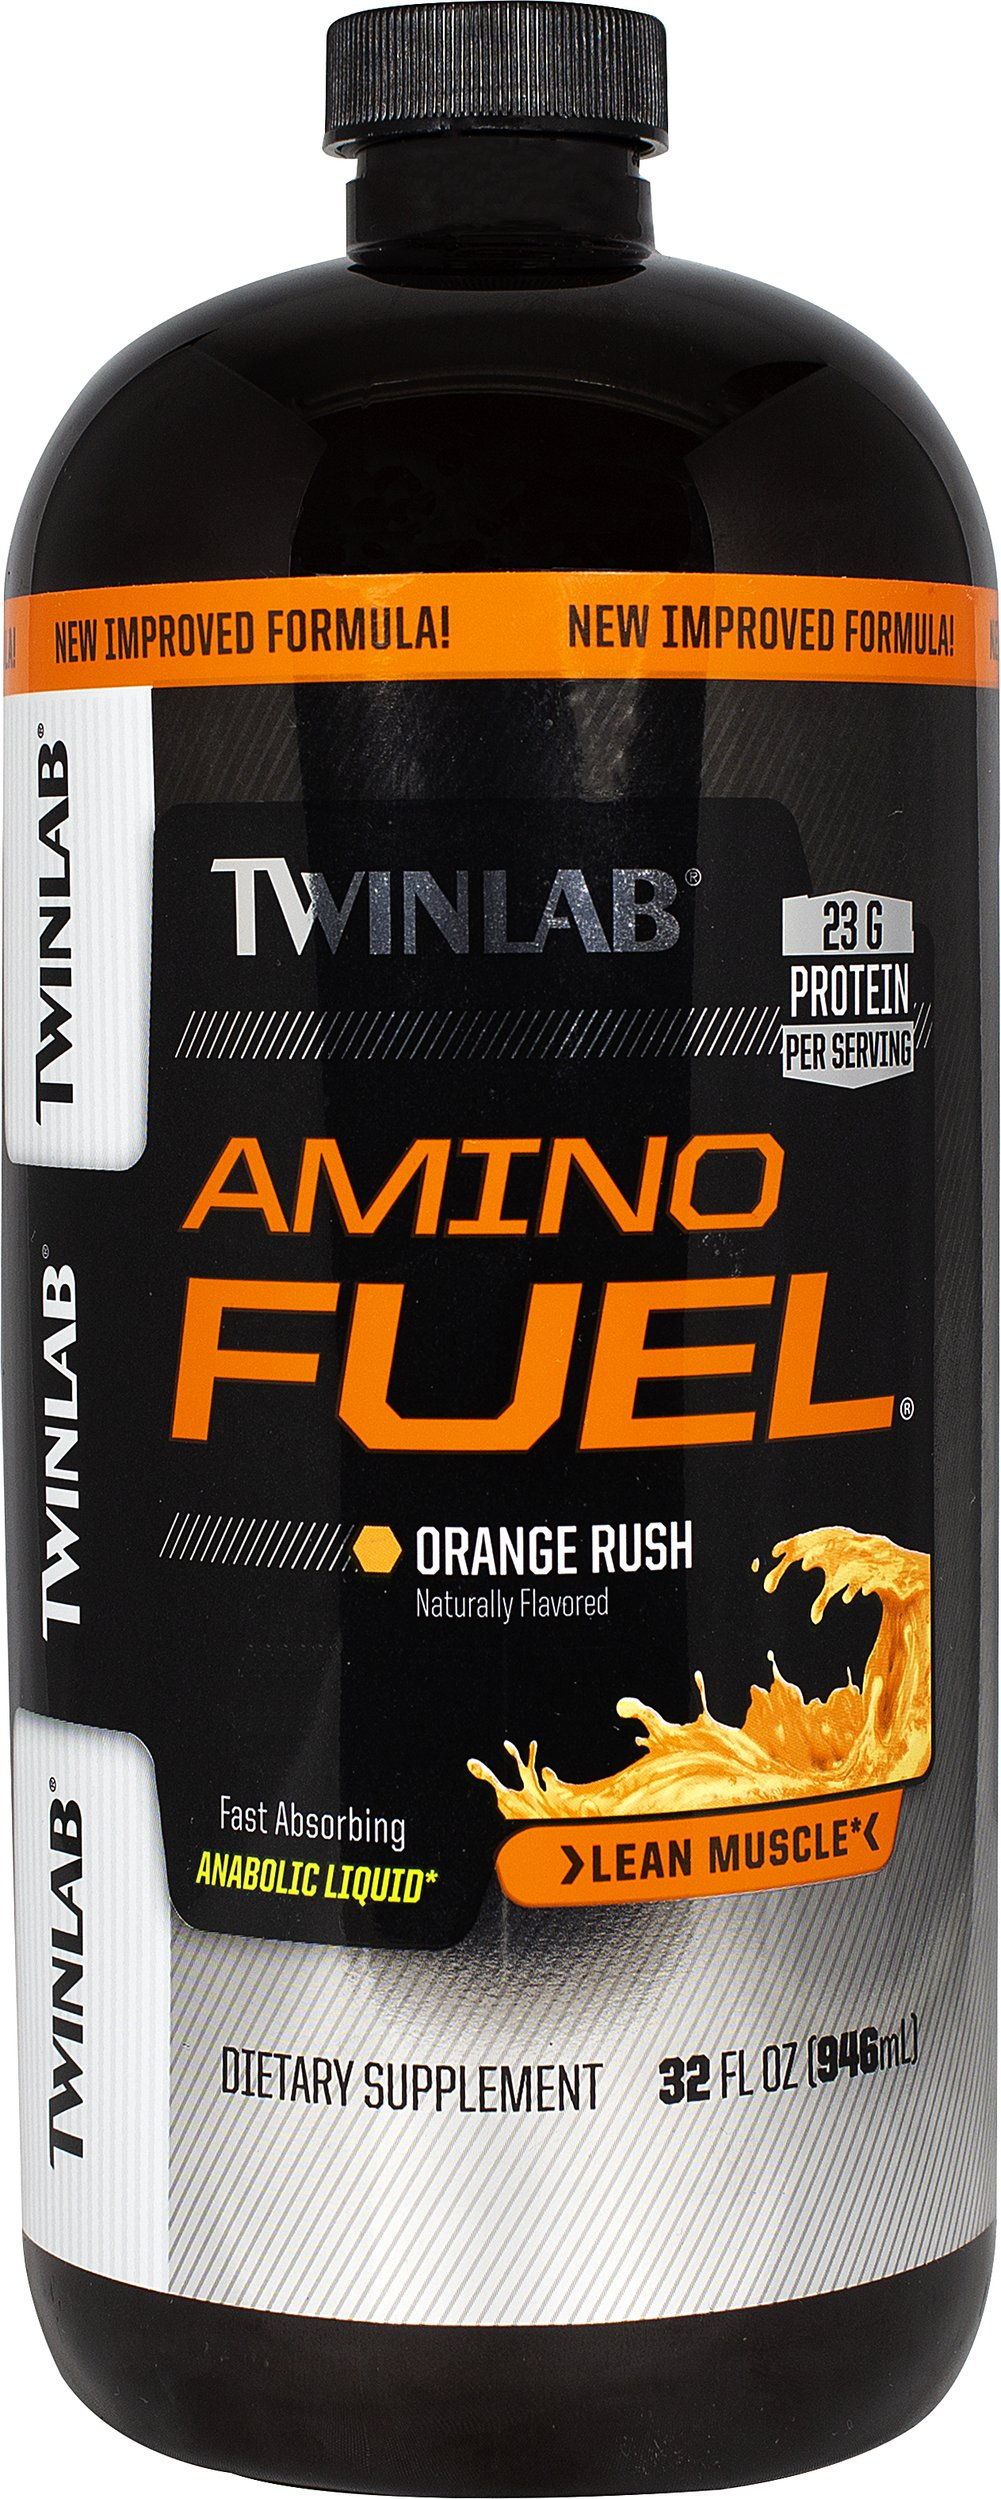 Amino Fuel® Orange Rush <p><strong>From the Manufacturer's Label: </strong></p><p>THE SCIENCE BEHIND THE SIZE:</p><p><strong>Product: </strong>A fast absorbing liquid amino acid that has, per serving, 15 grams (15,000 mg) of high quality branched chain, peptide-bonded, and free amino acids; stress B-complex vitamins; energizing complex carbohydrates; and pure crystalline fructose.**</p><p><strong>Result:</strong&